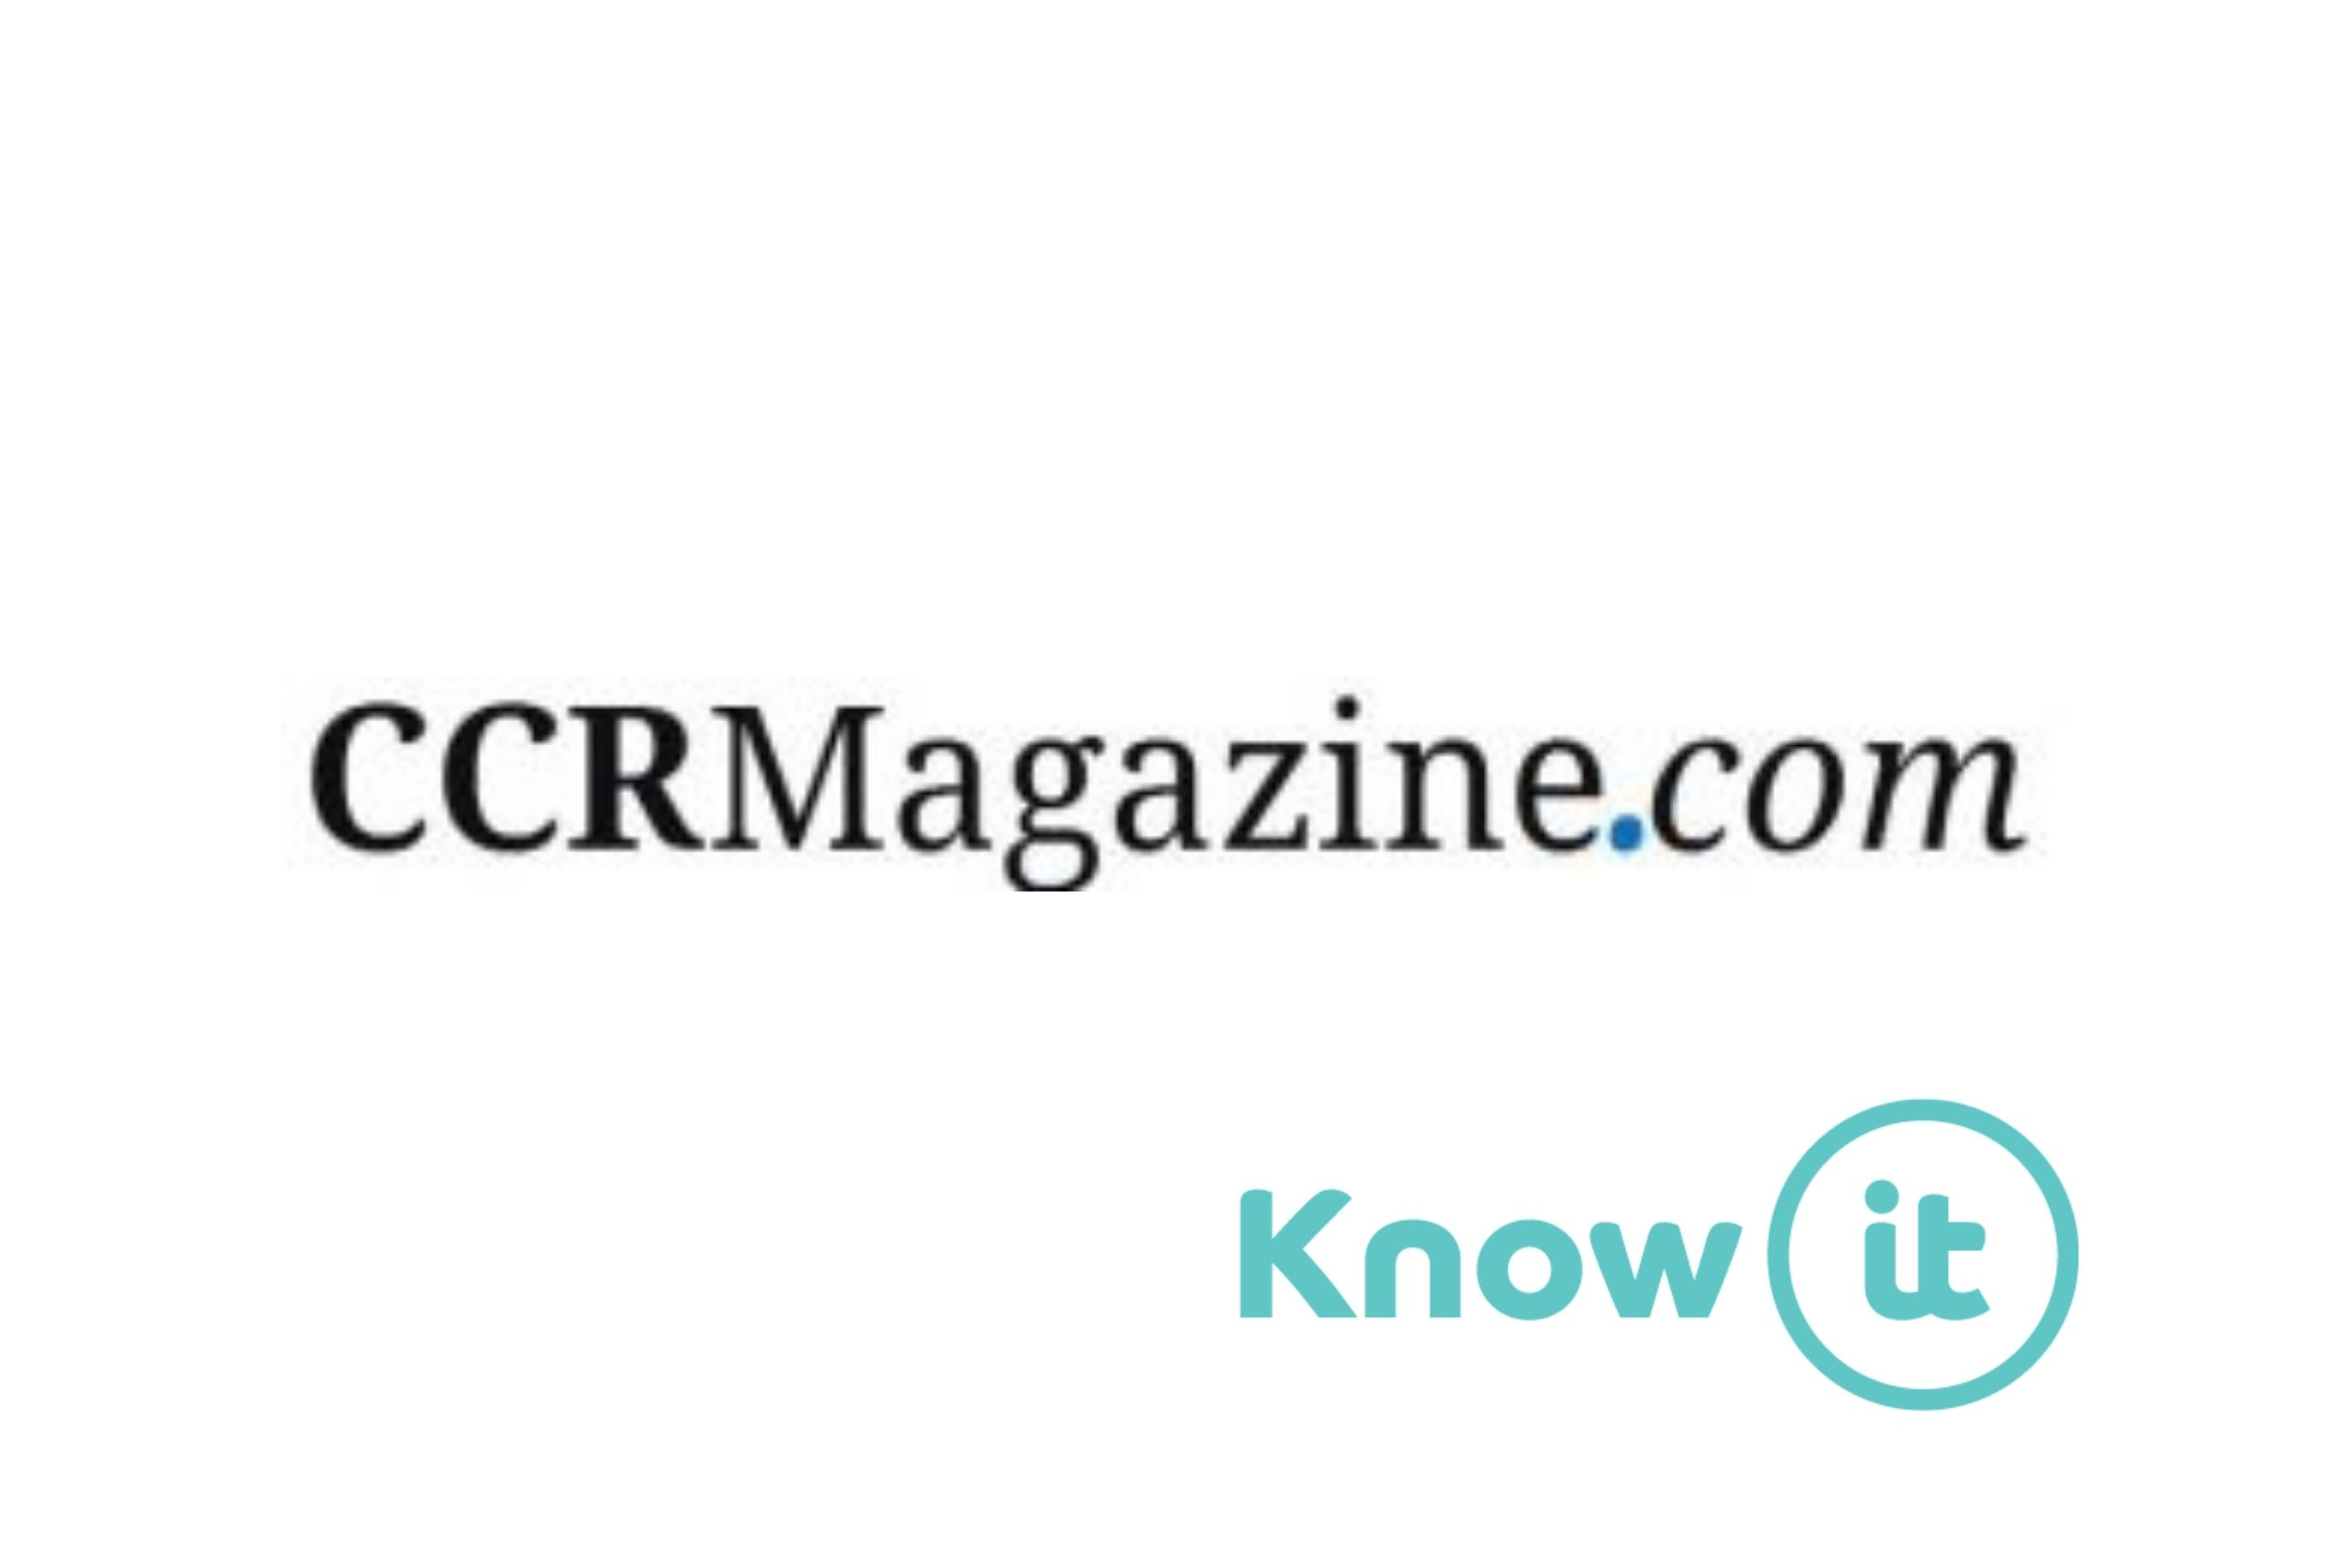 Image with Know-it logo and CCR Magazine logi